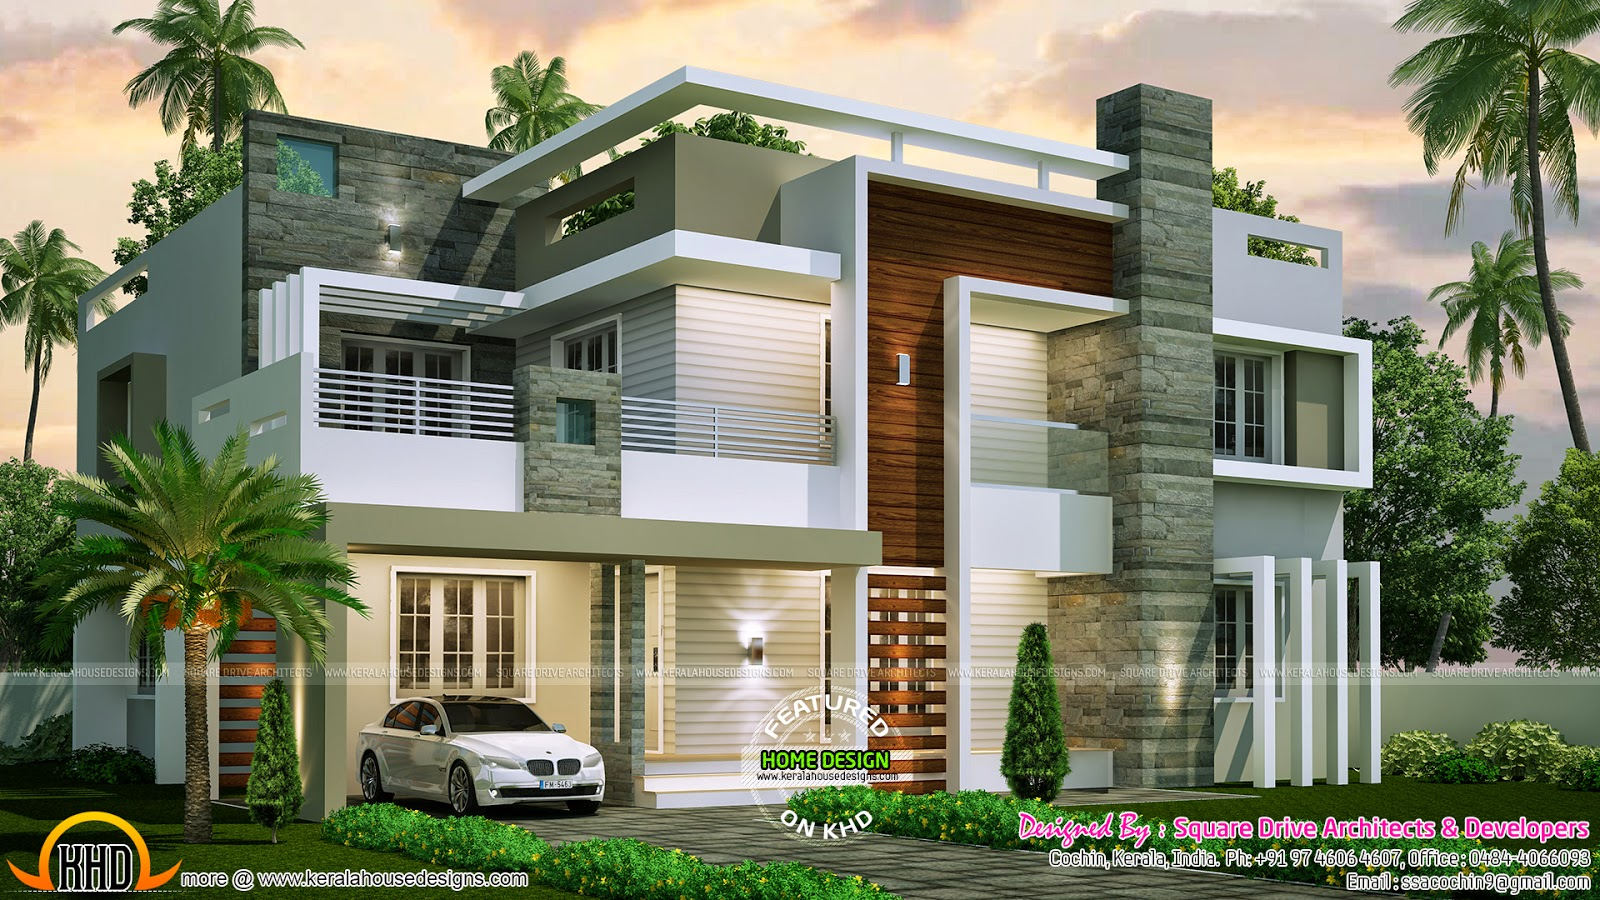 4 bedroom contemporary home design kerala home design and floor plans - Design house ...